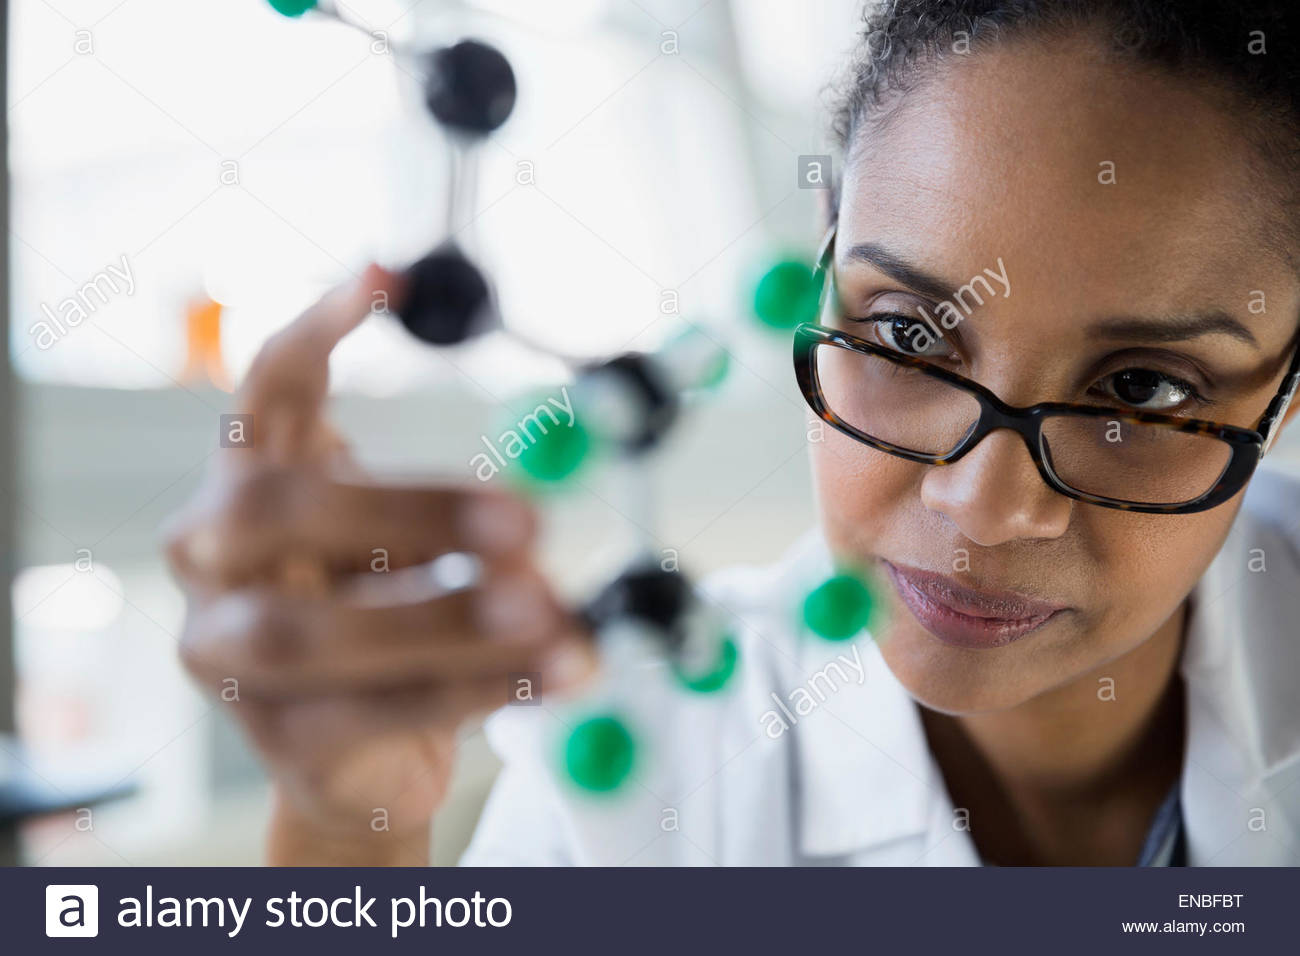 Focused scientist examining atom model - Stock Image